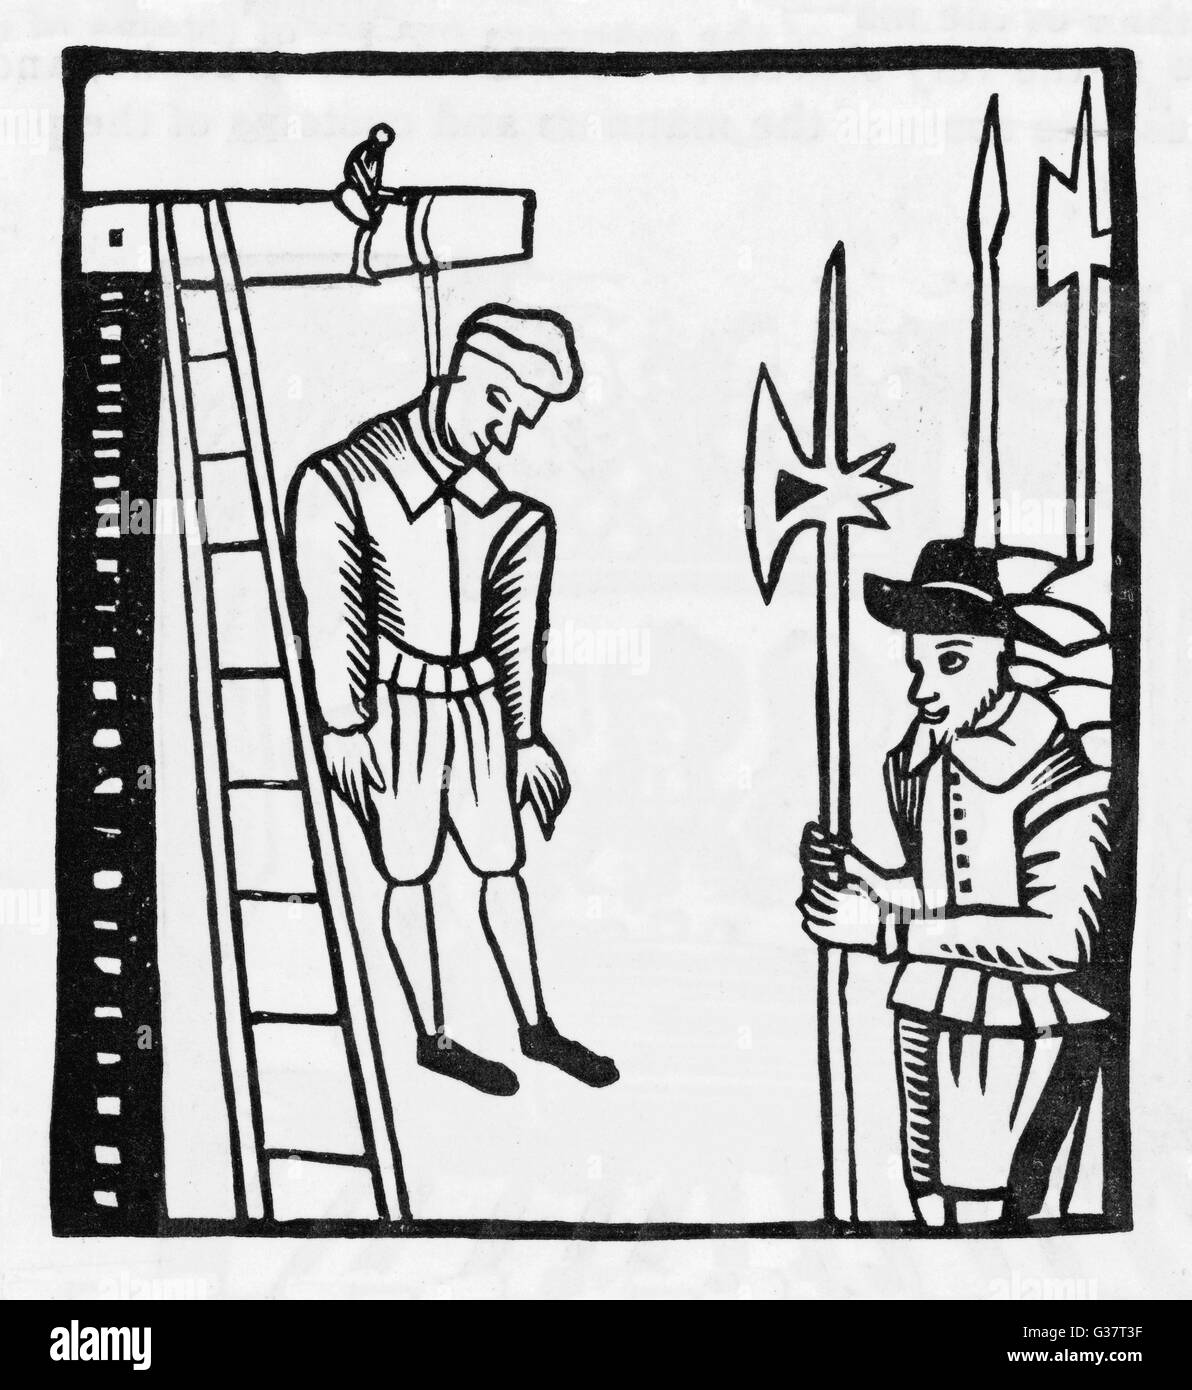 HANGING: prisoner publicly hanged from gallows        Date: Sixteenth century - Stock Image